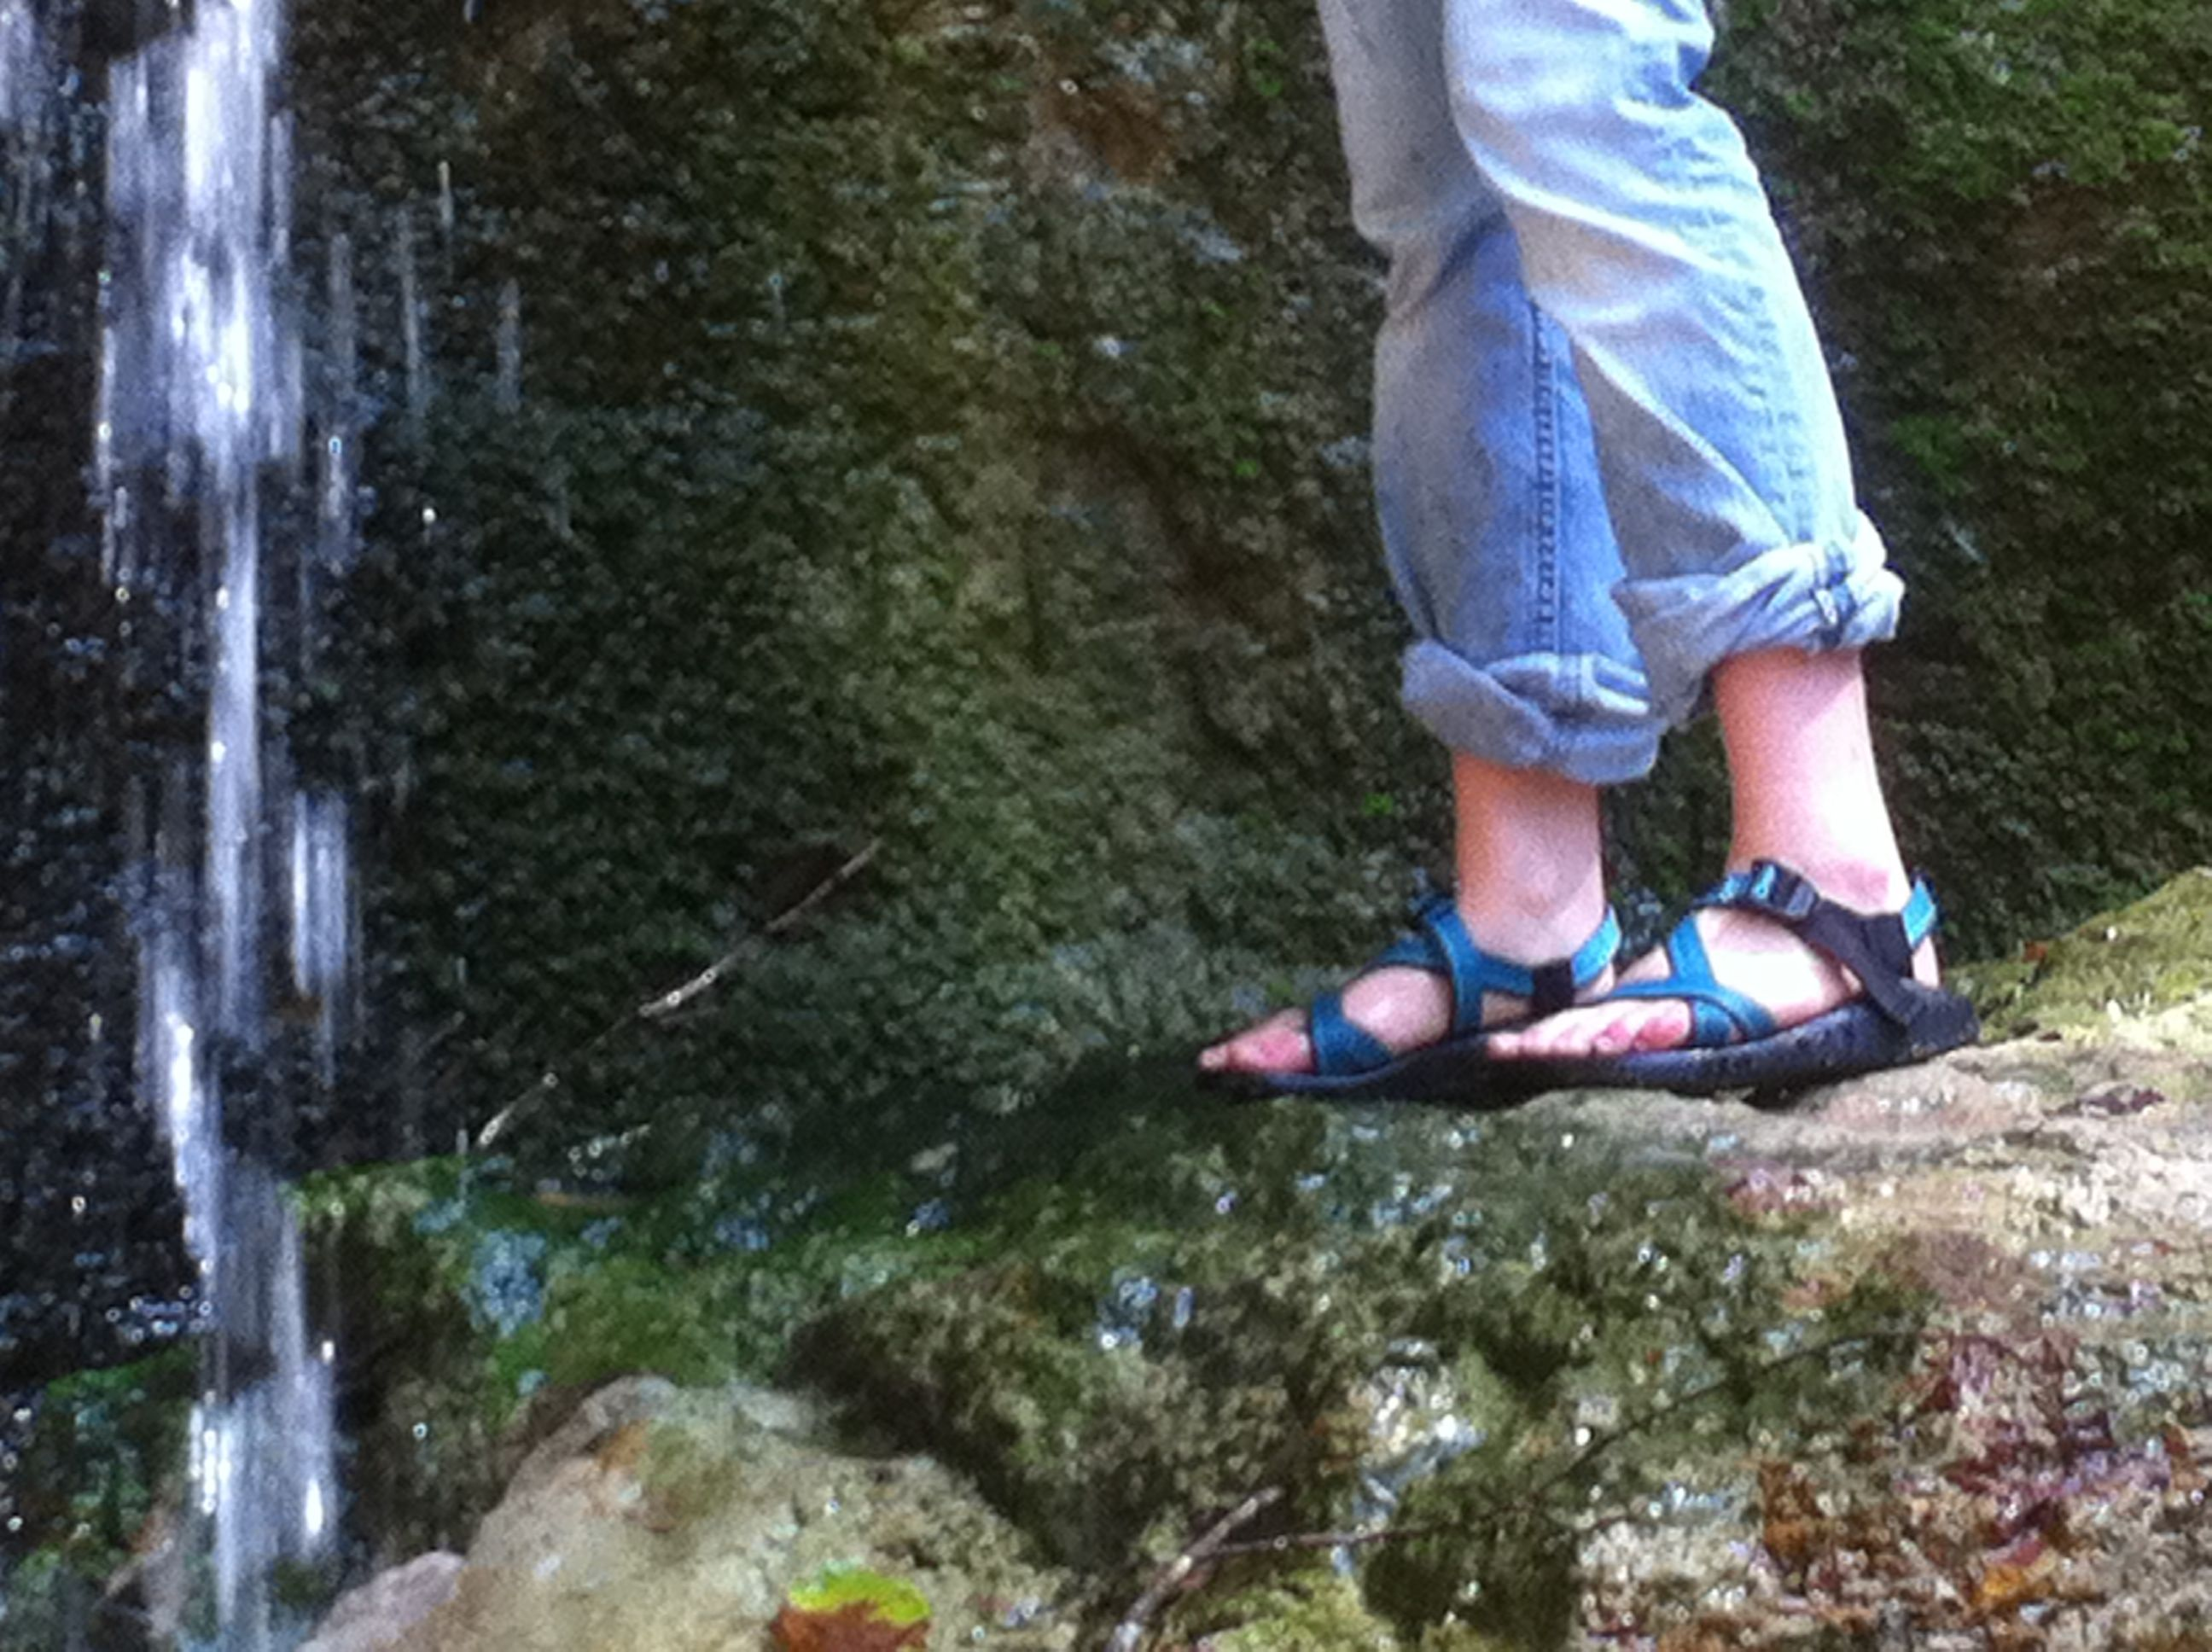 chacos - all purpose shoes and so comfortable. in camp shoes? i can wear these with socks when it's cold too